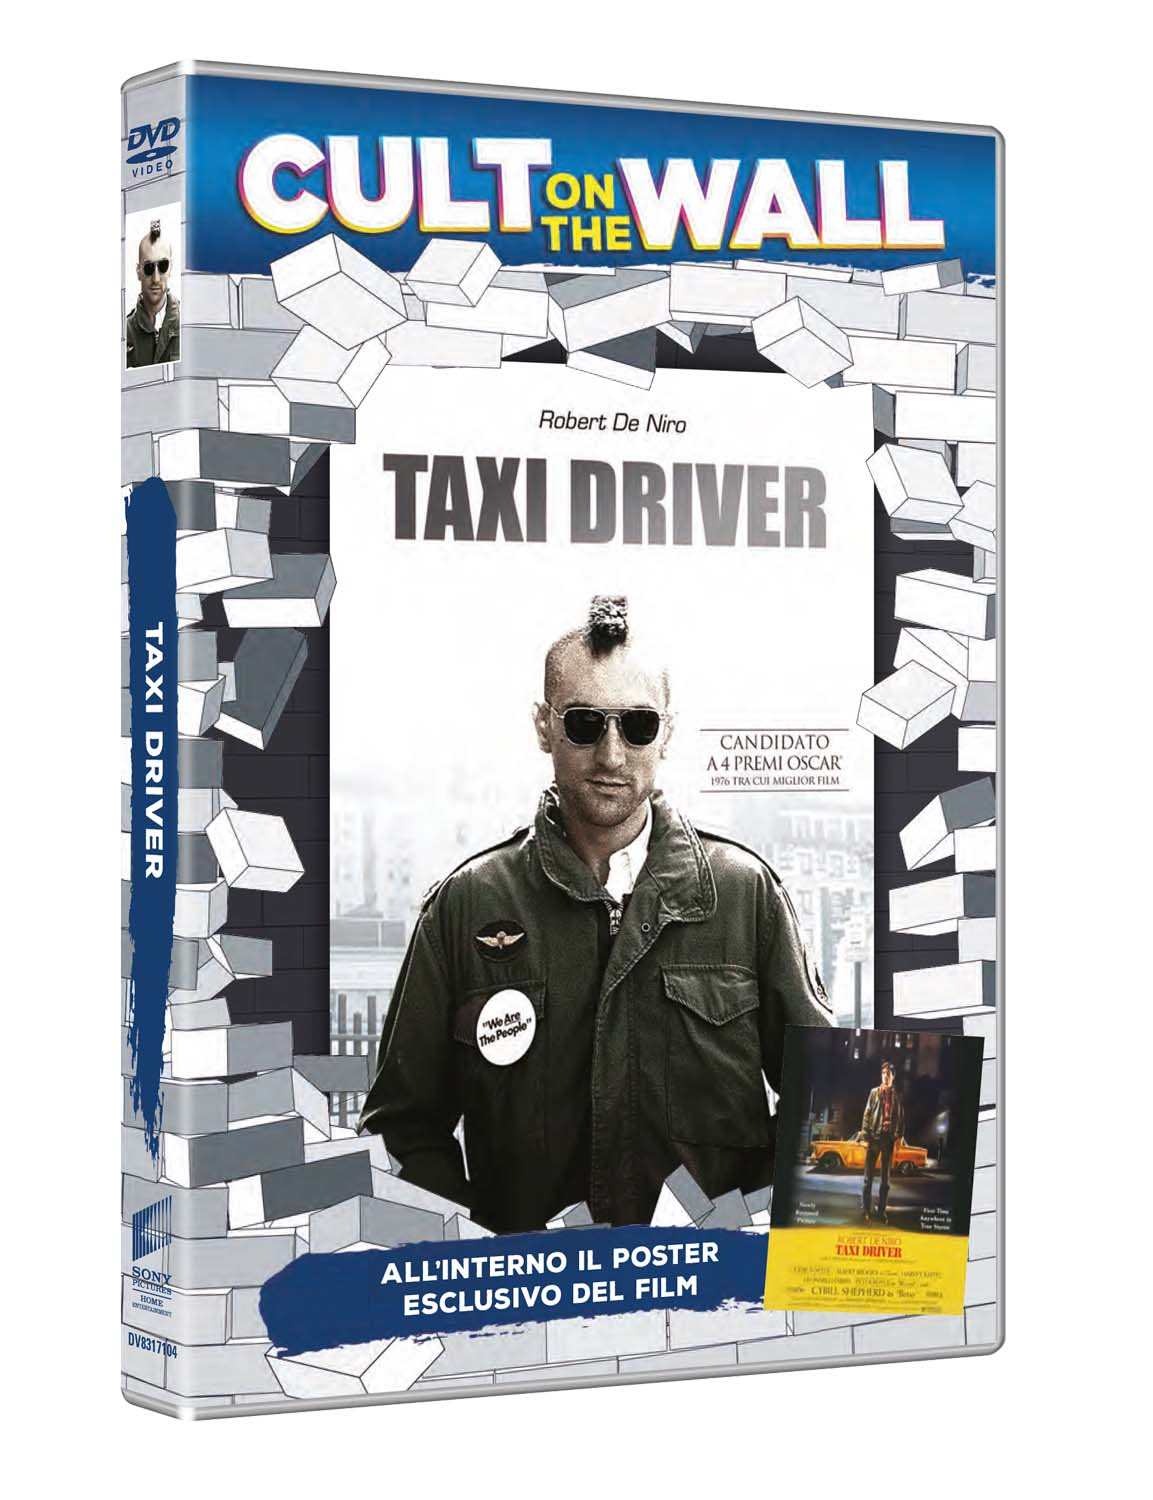 Taxi driver (1976) (cult on the wall)